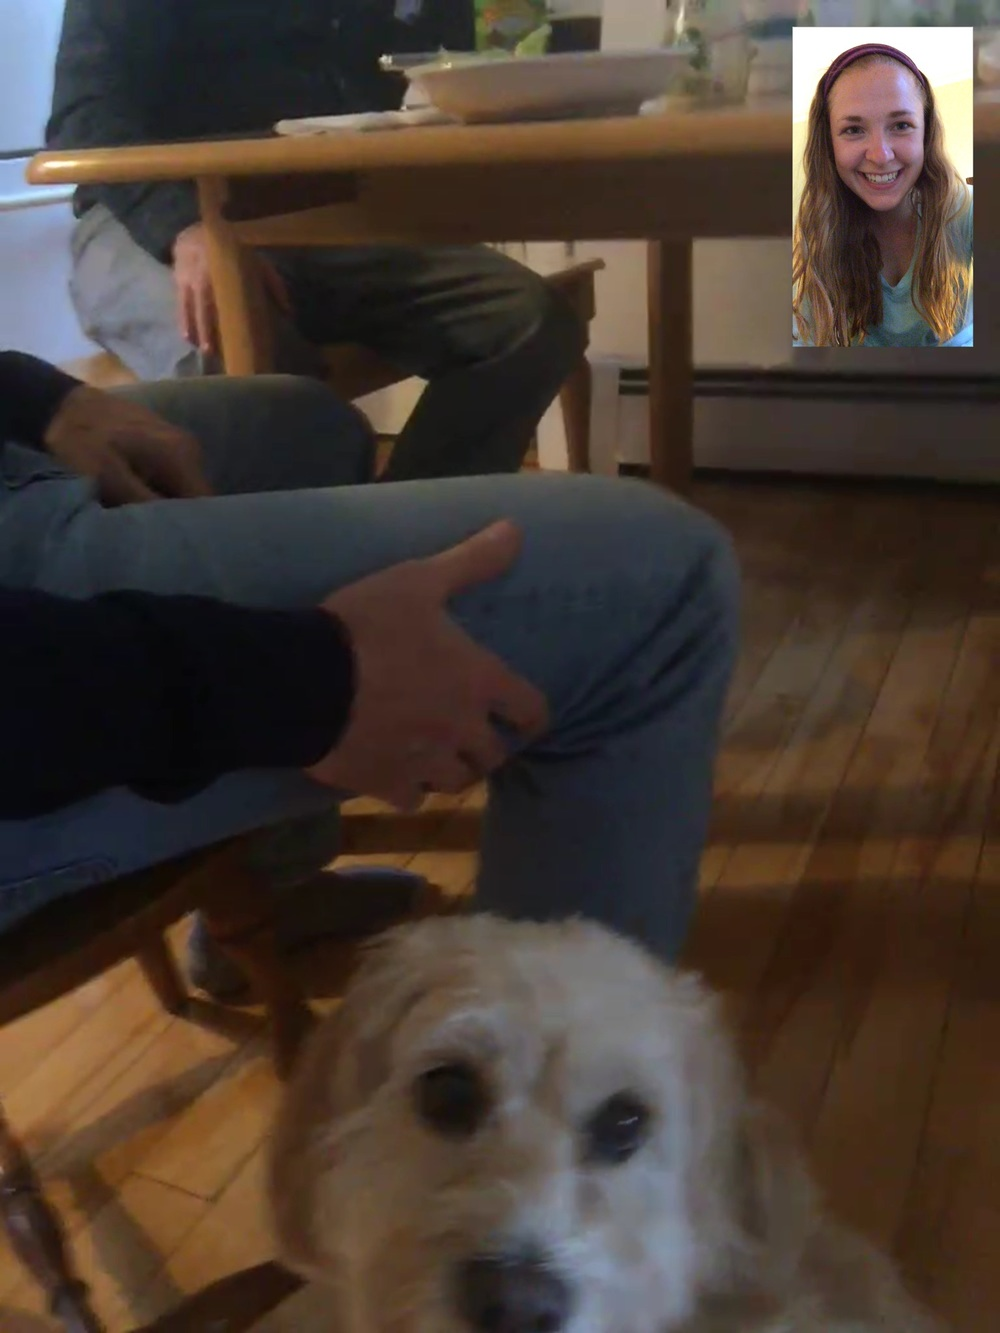 FaceTiming with Bella!